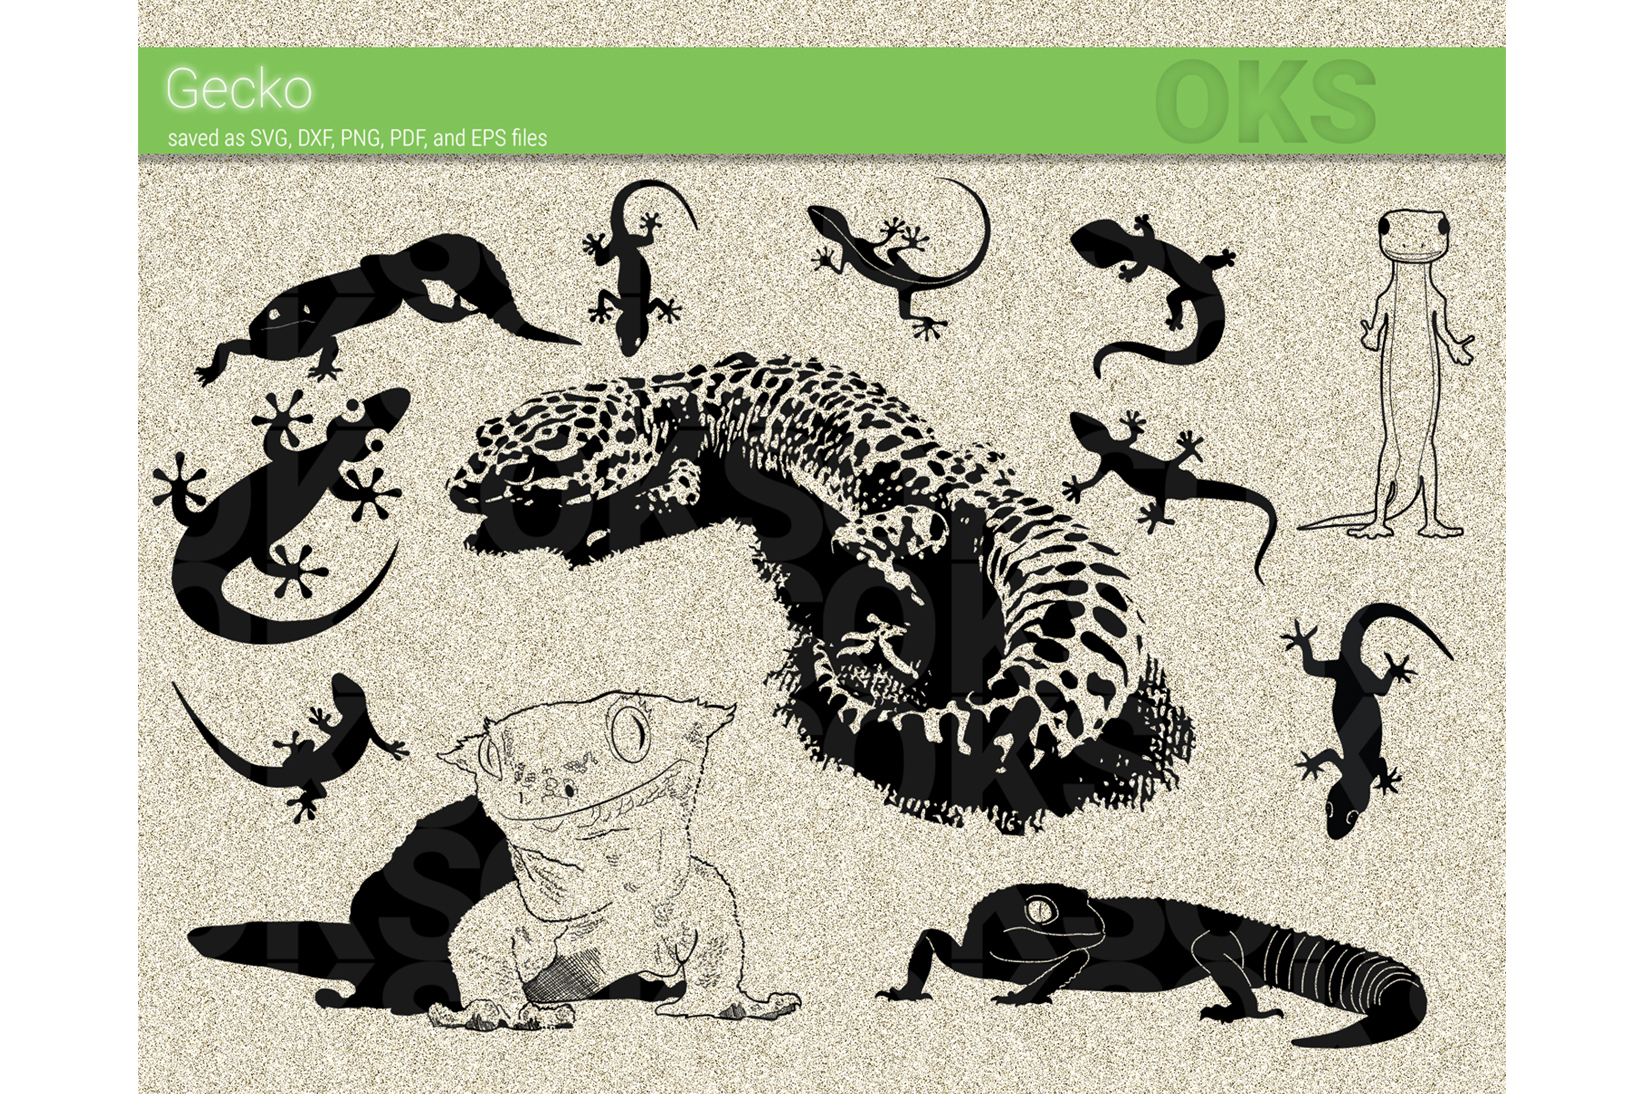 Download Free Gecko Graphic By Crafteroks Creative Fabrica for Cricut Explore, Silhouette and other cutting machines.